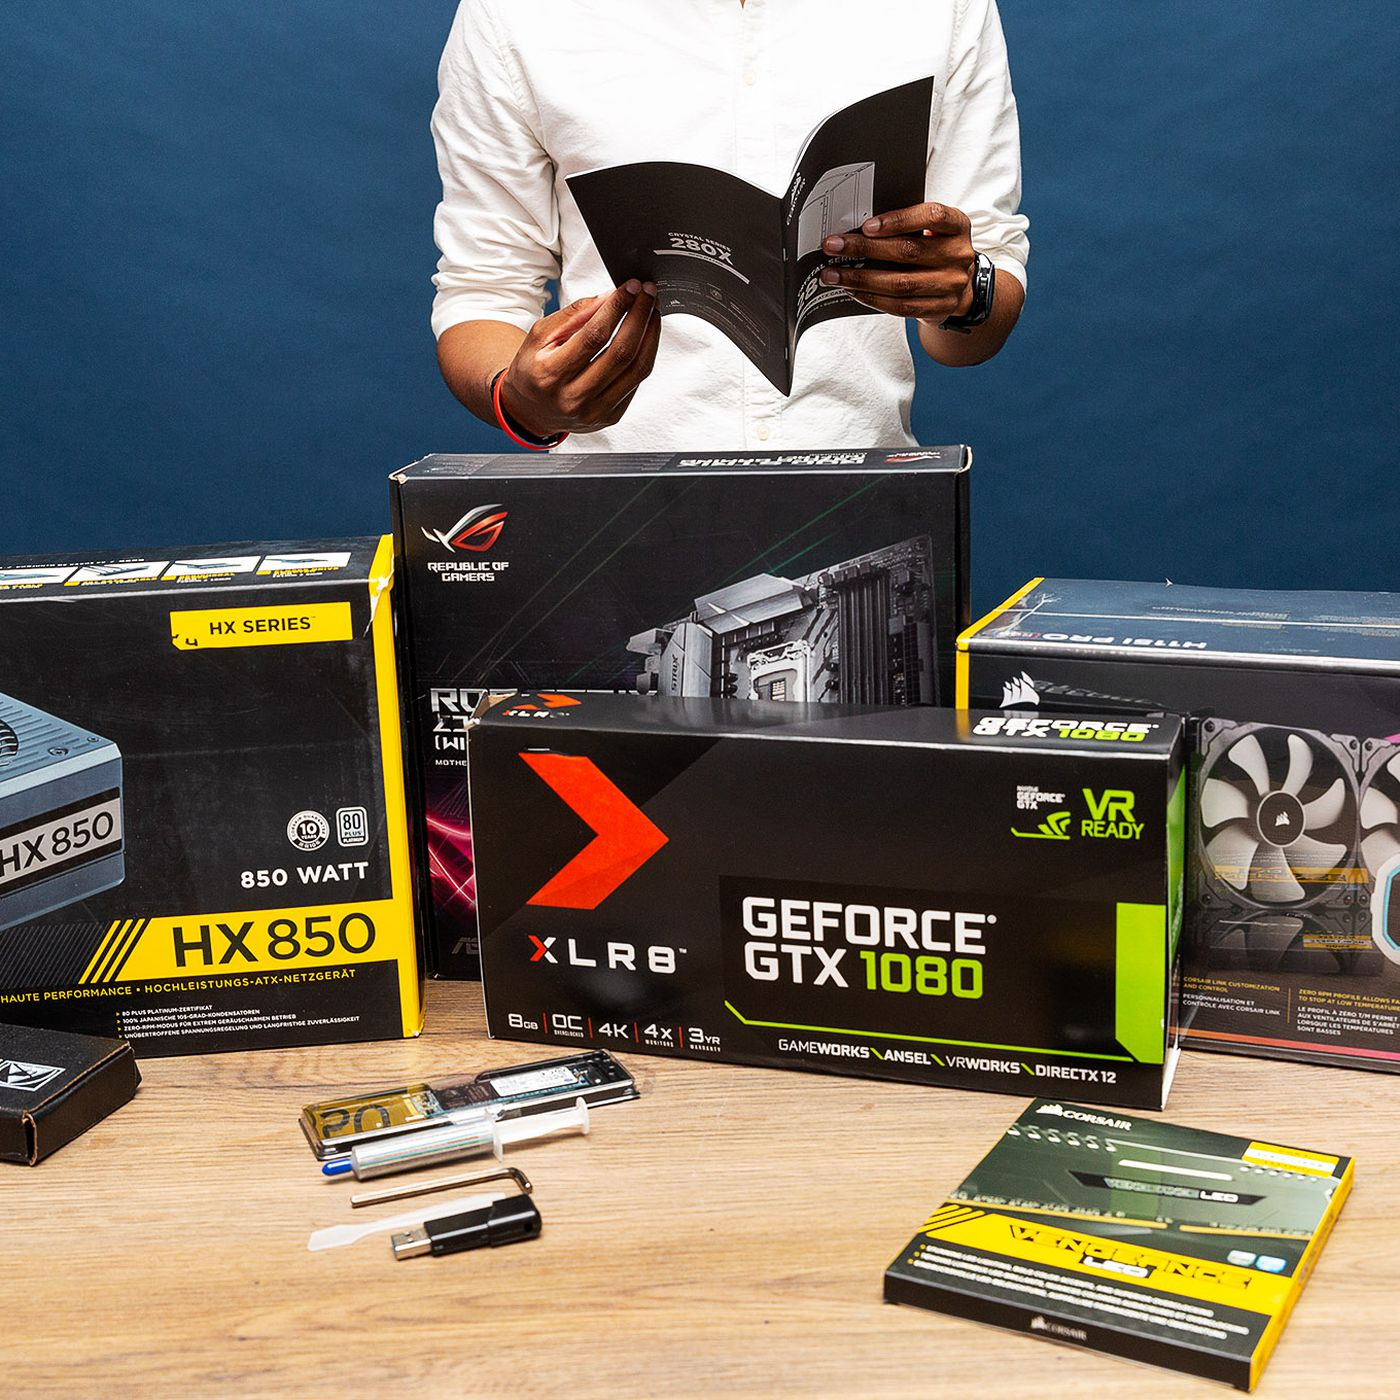 How To Build A Custom Pc For Gaming Editing Or Coding The Verge